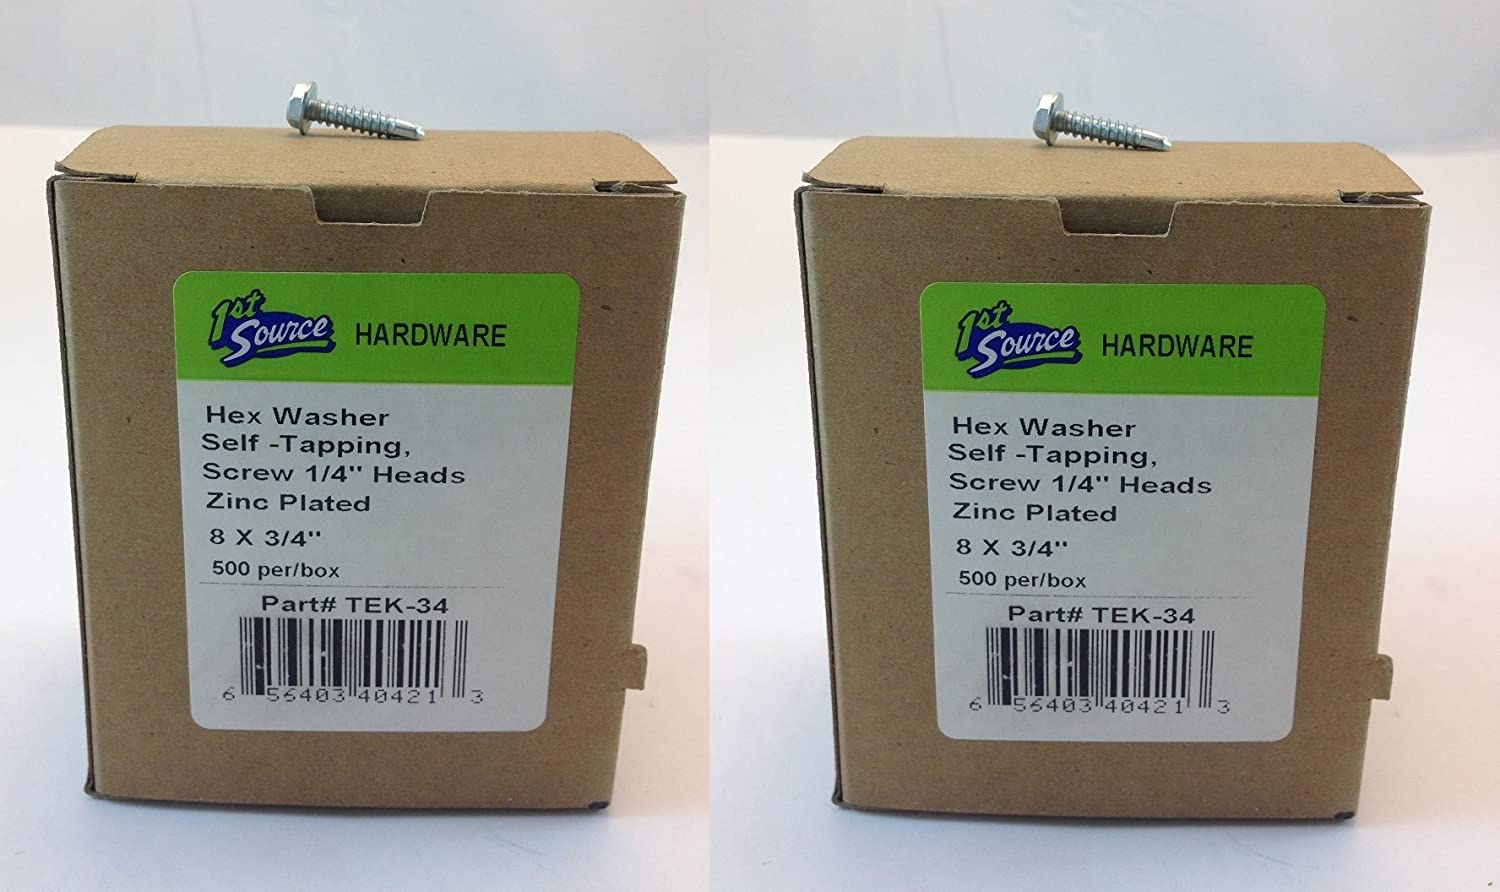 HEX Washer/SELF Tapping Screws 1/4